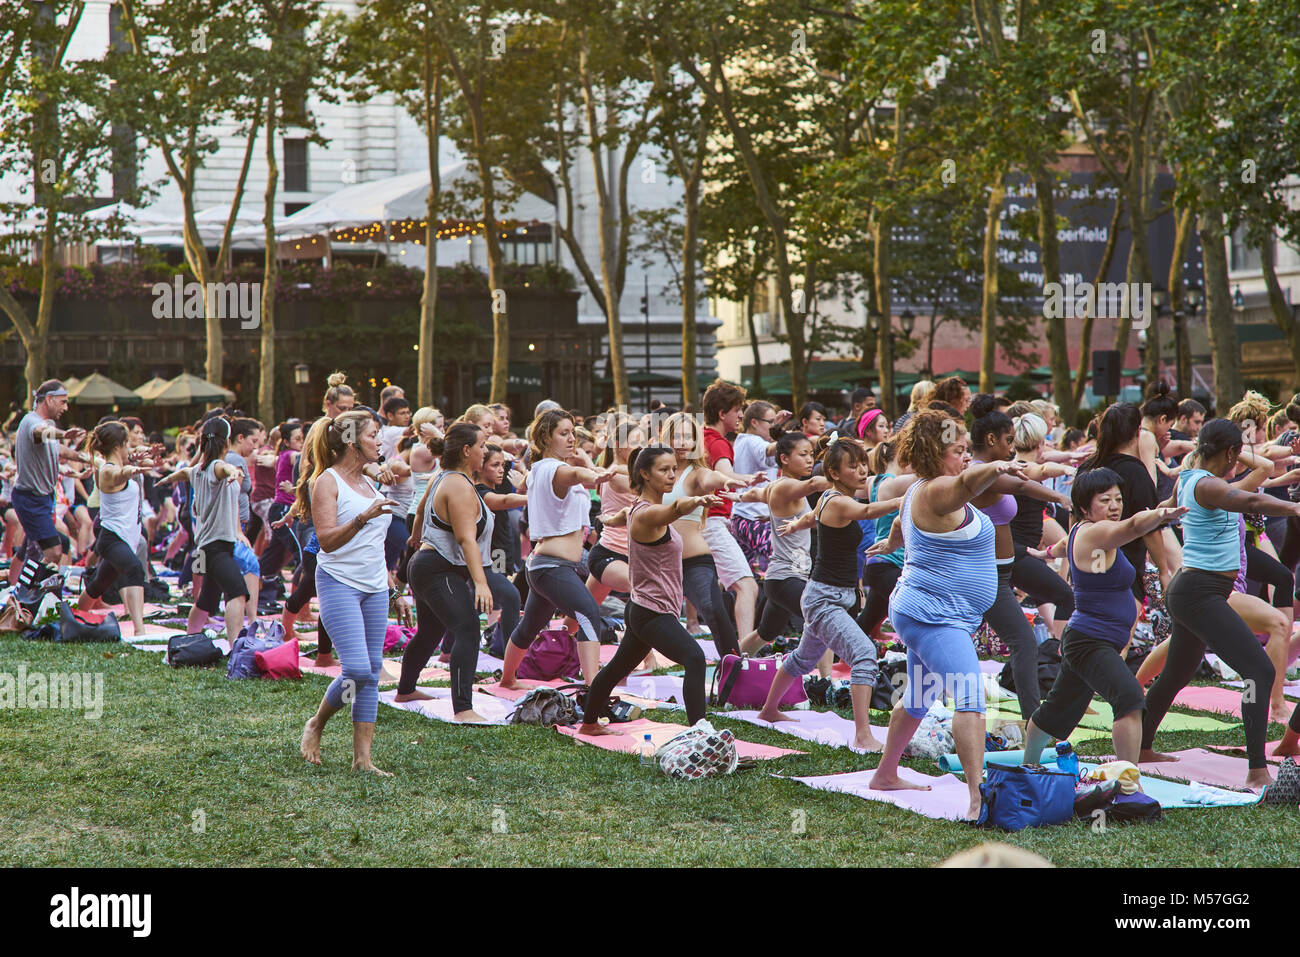 Yoga classes presented by sportswear brand Athleta, during which instructors from Yoga Journal on the Lawn - Stock Image